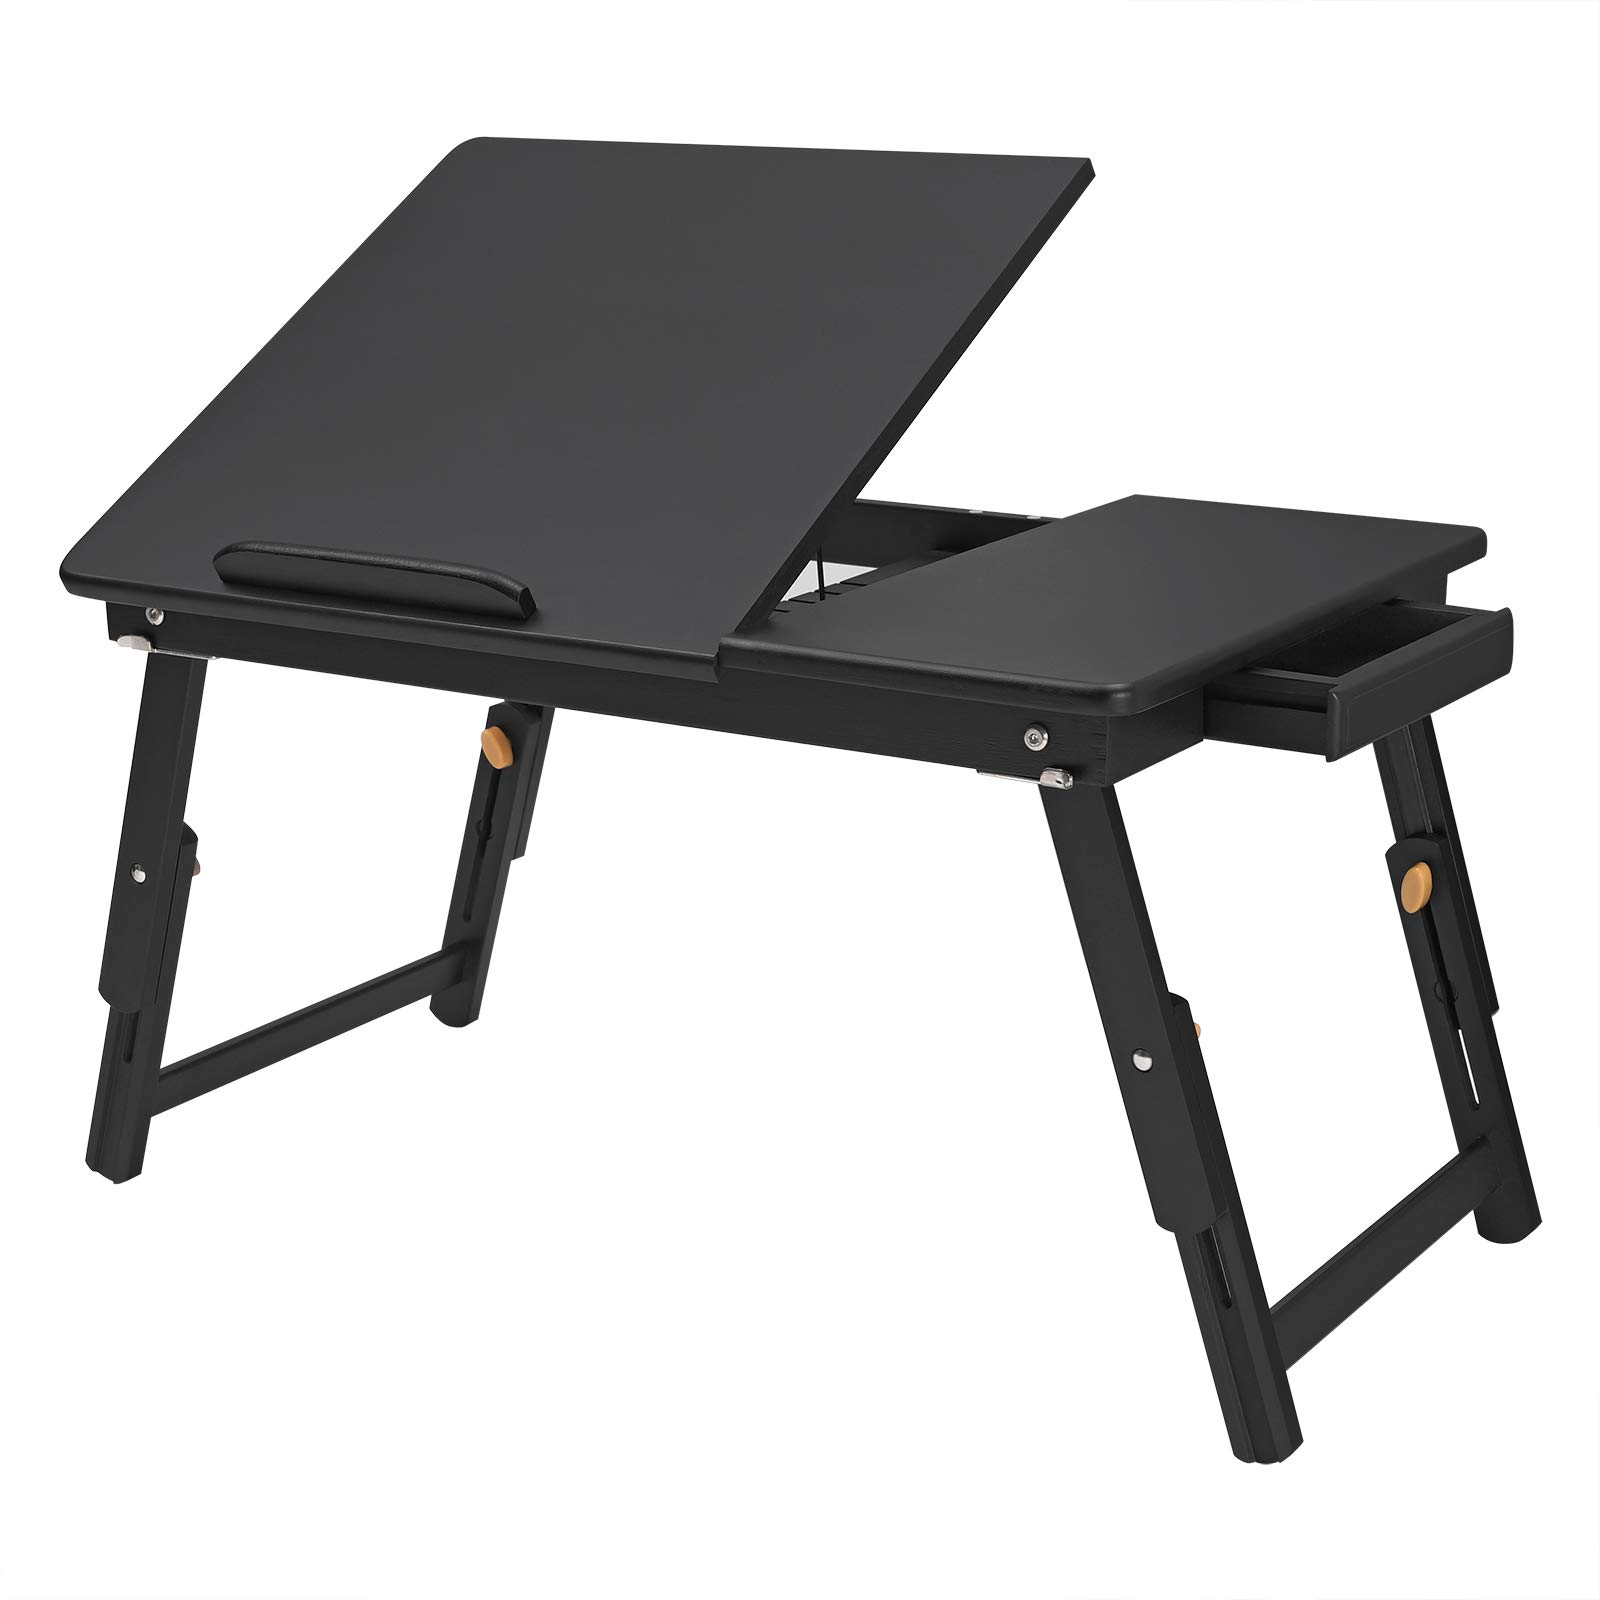 SONGMICS Folding Bamboo Laptop Desk, Large, Height Adjustable, Multifunctional, Lap-Desk Table with Adjustable Tilt Angle, Notebook Stand, Sofa Bed Tray with Drawer, Black ULLD009BK